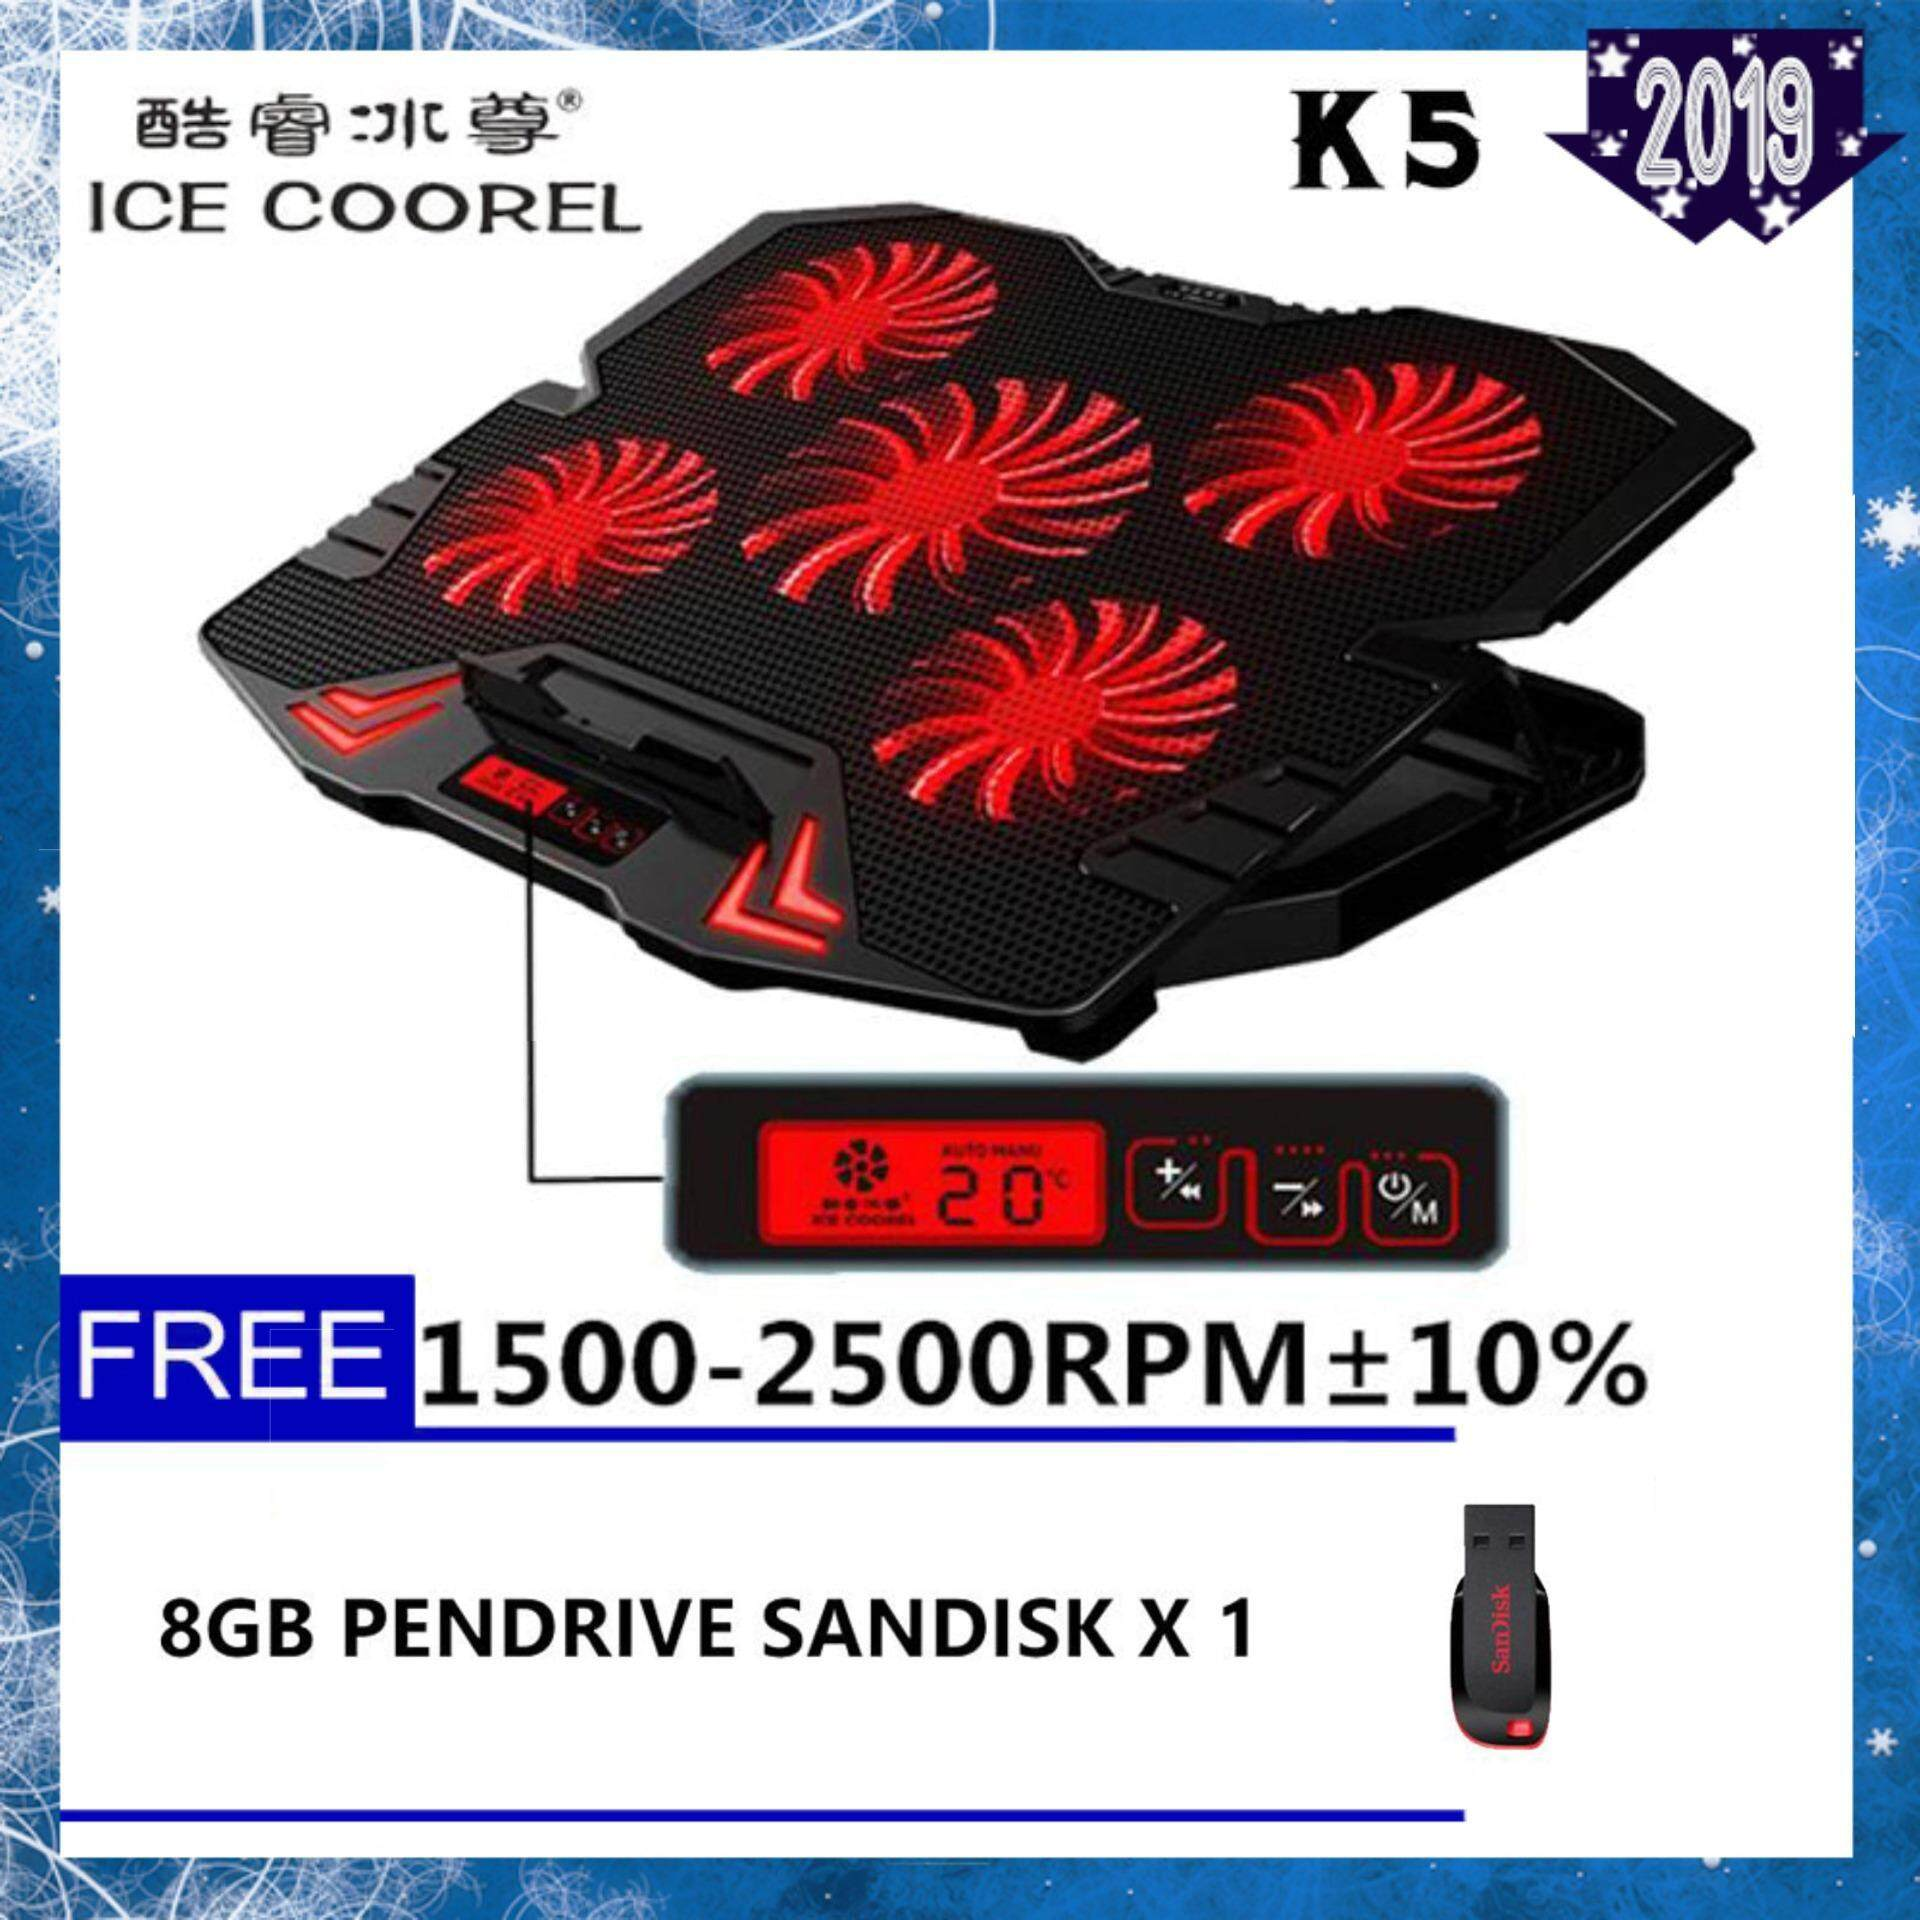 ICE COOREL K5 Super Mute 5 Fans Ice Cooling Technology Red Ligthing Cooler Pad with Rack Stand and Built-in LCD Display 5 Speed control of Fans for Laptop- Premium Malaysia